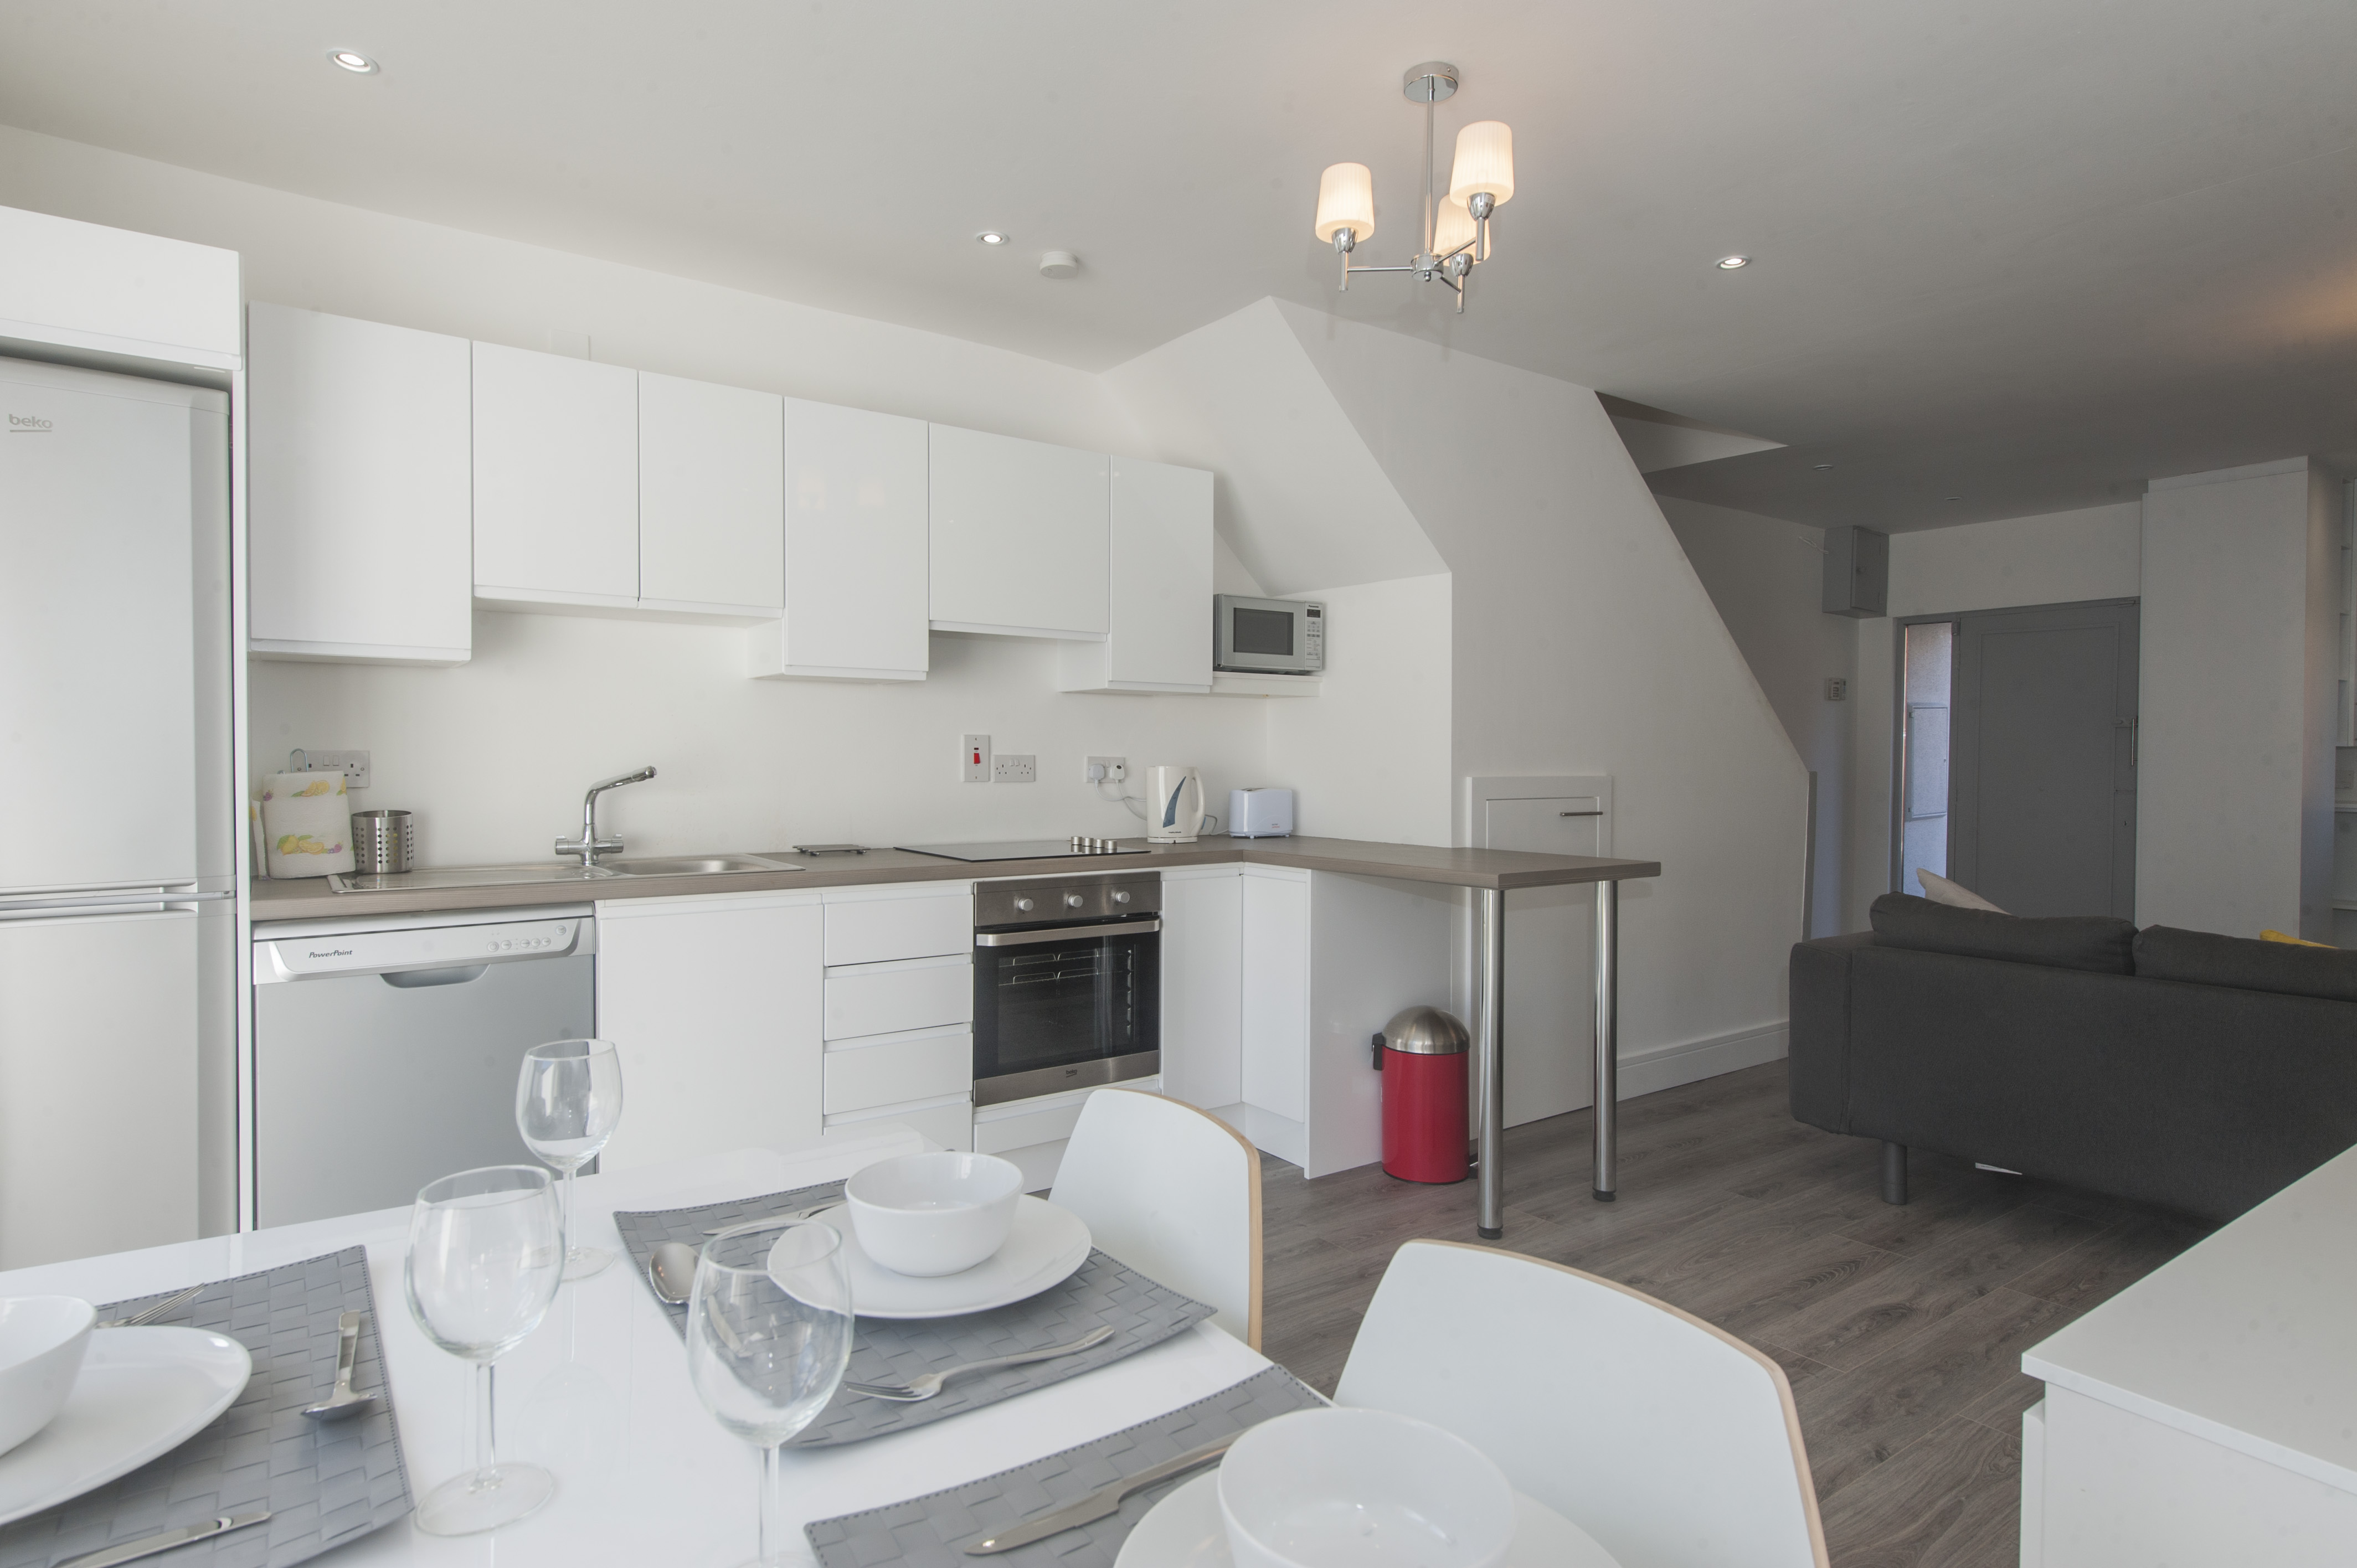 Image of a Dwellworks corporate housing kitchen